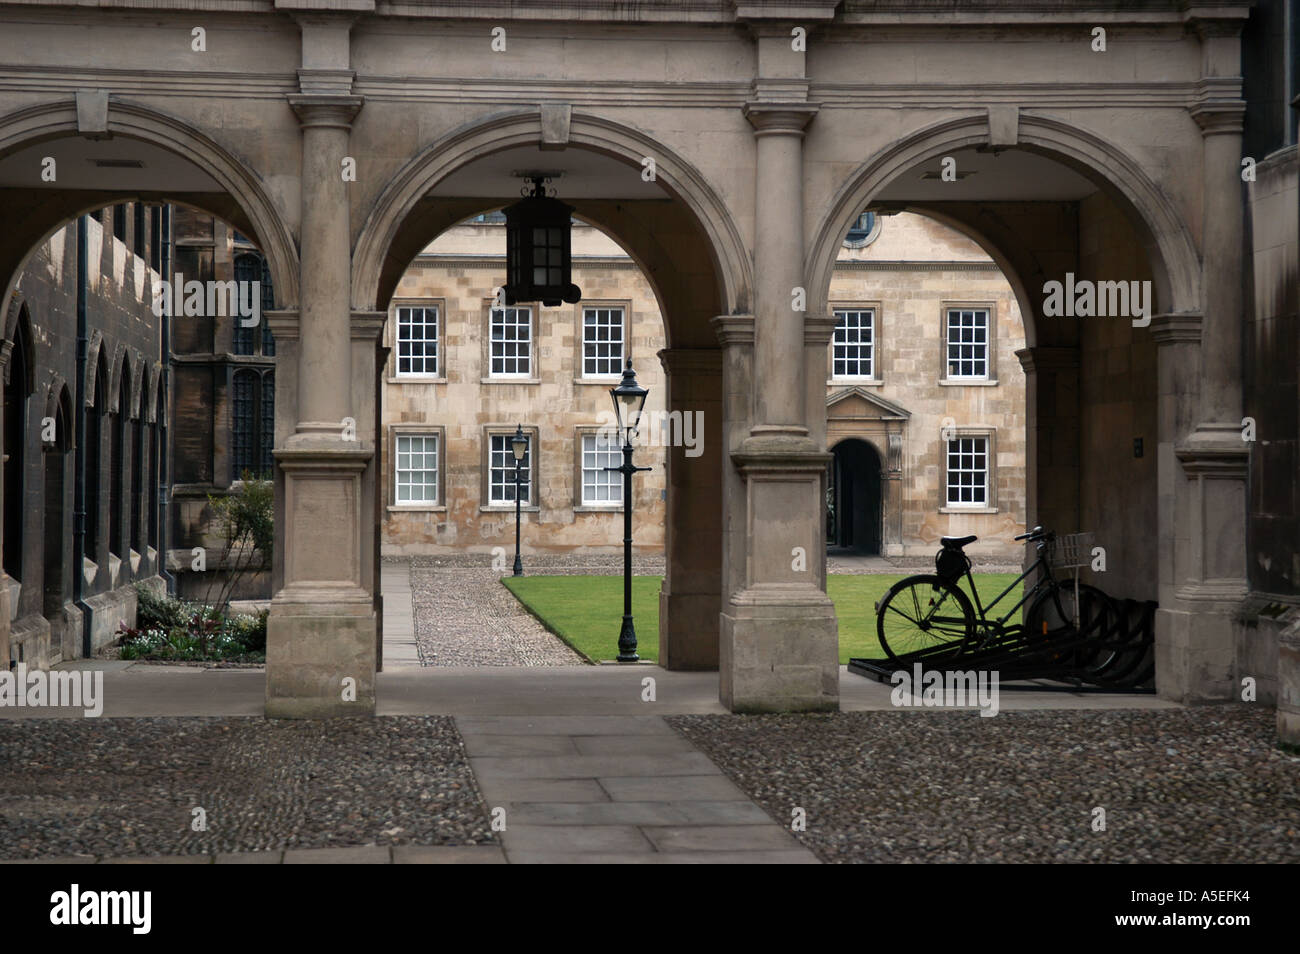 Cambridge University, Cambridge, England. Peterhouse College entrance. - Stock Image